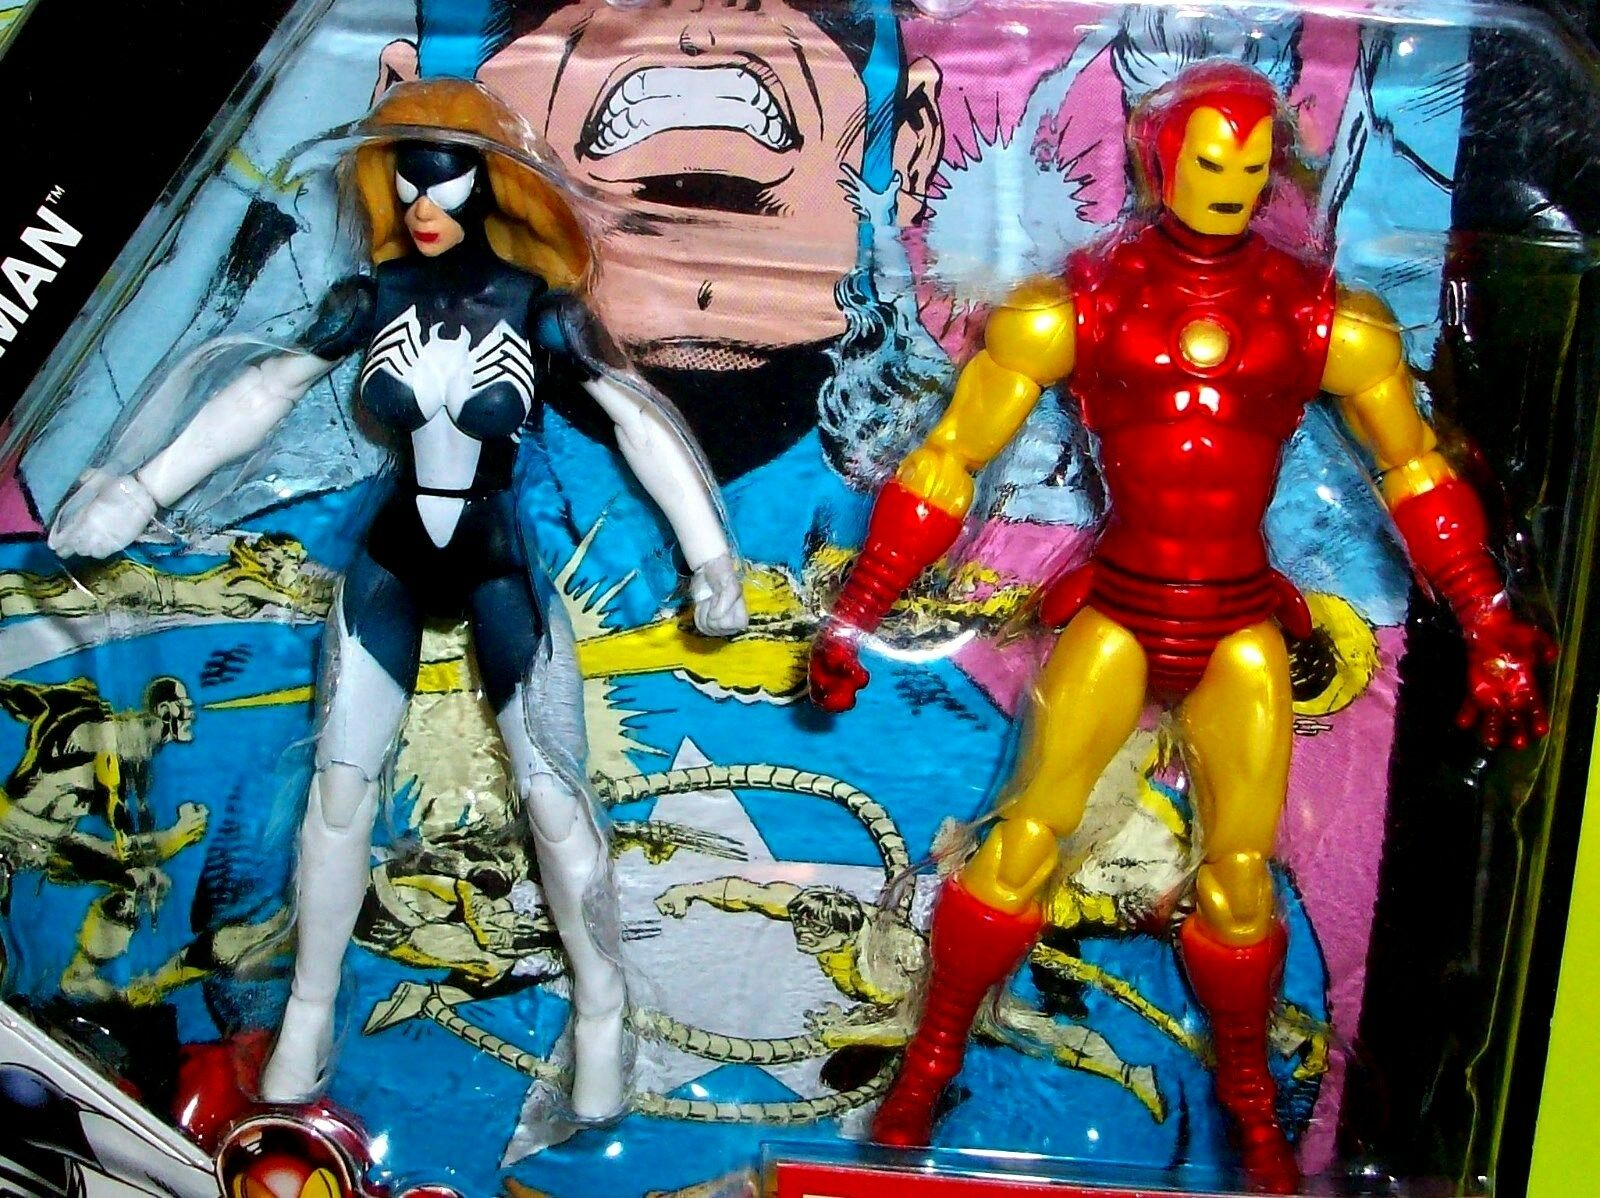 Marvel Universe IRON MAN SPIDER WOMAN Secret Wars Comic Book Action Figures